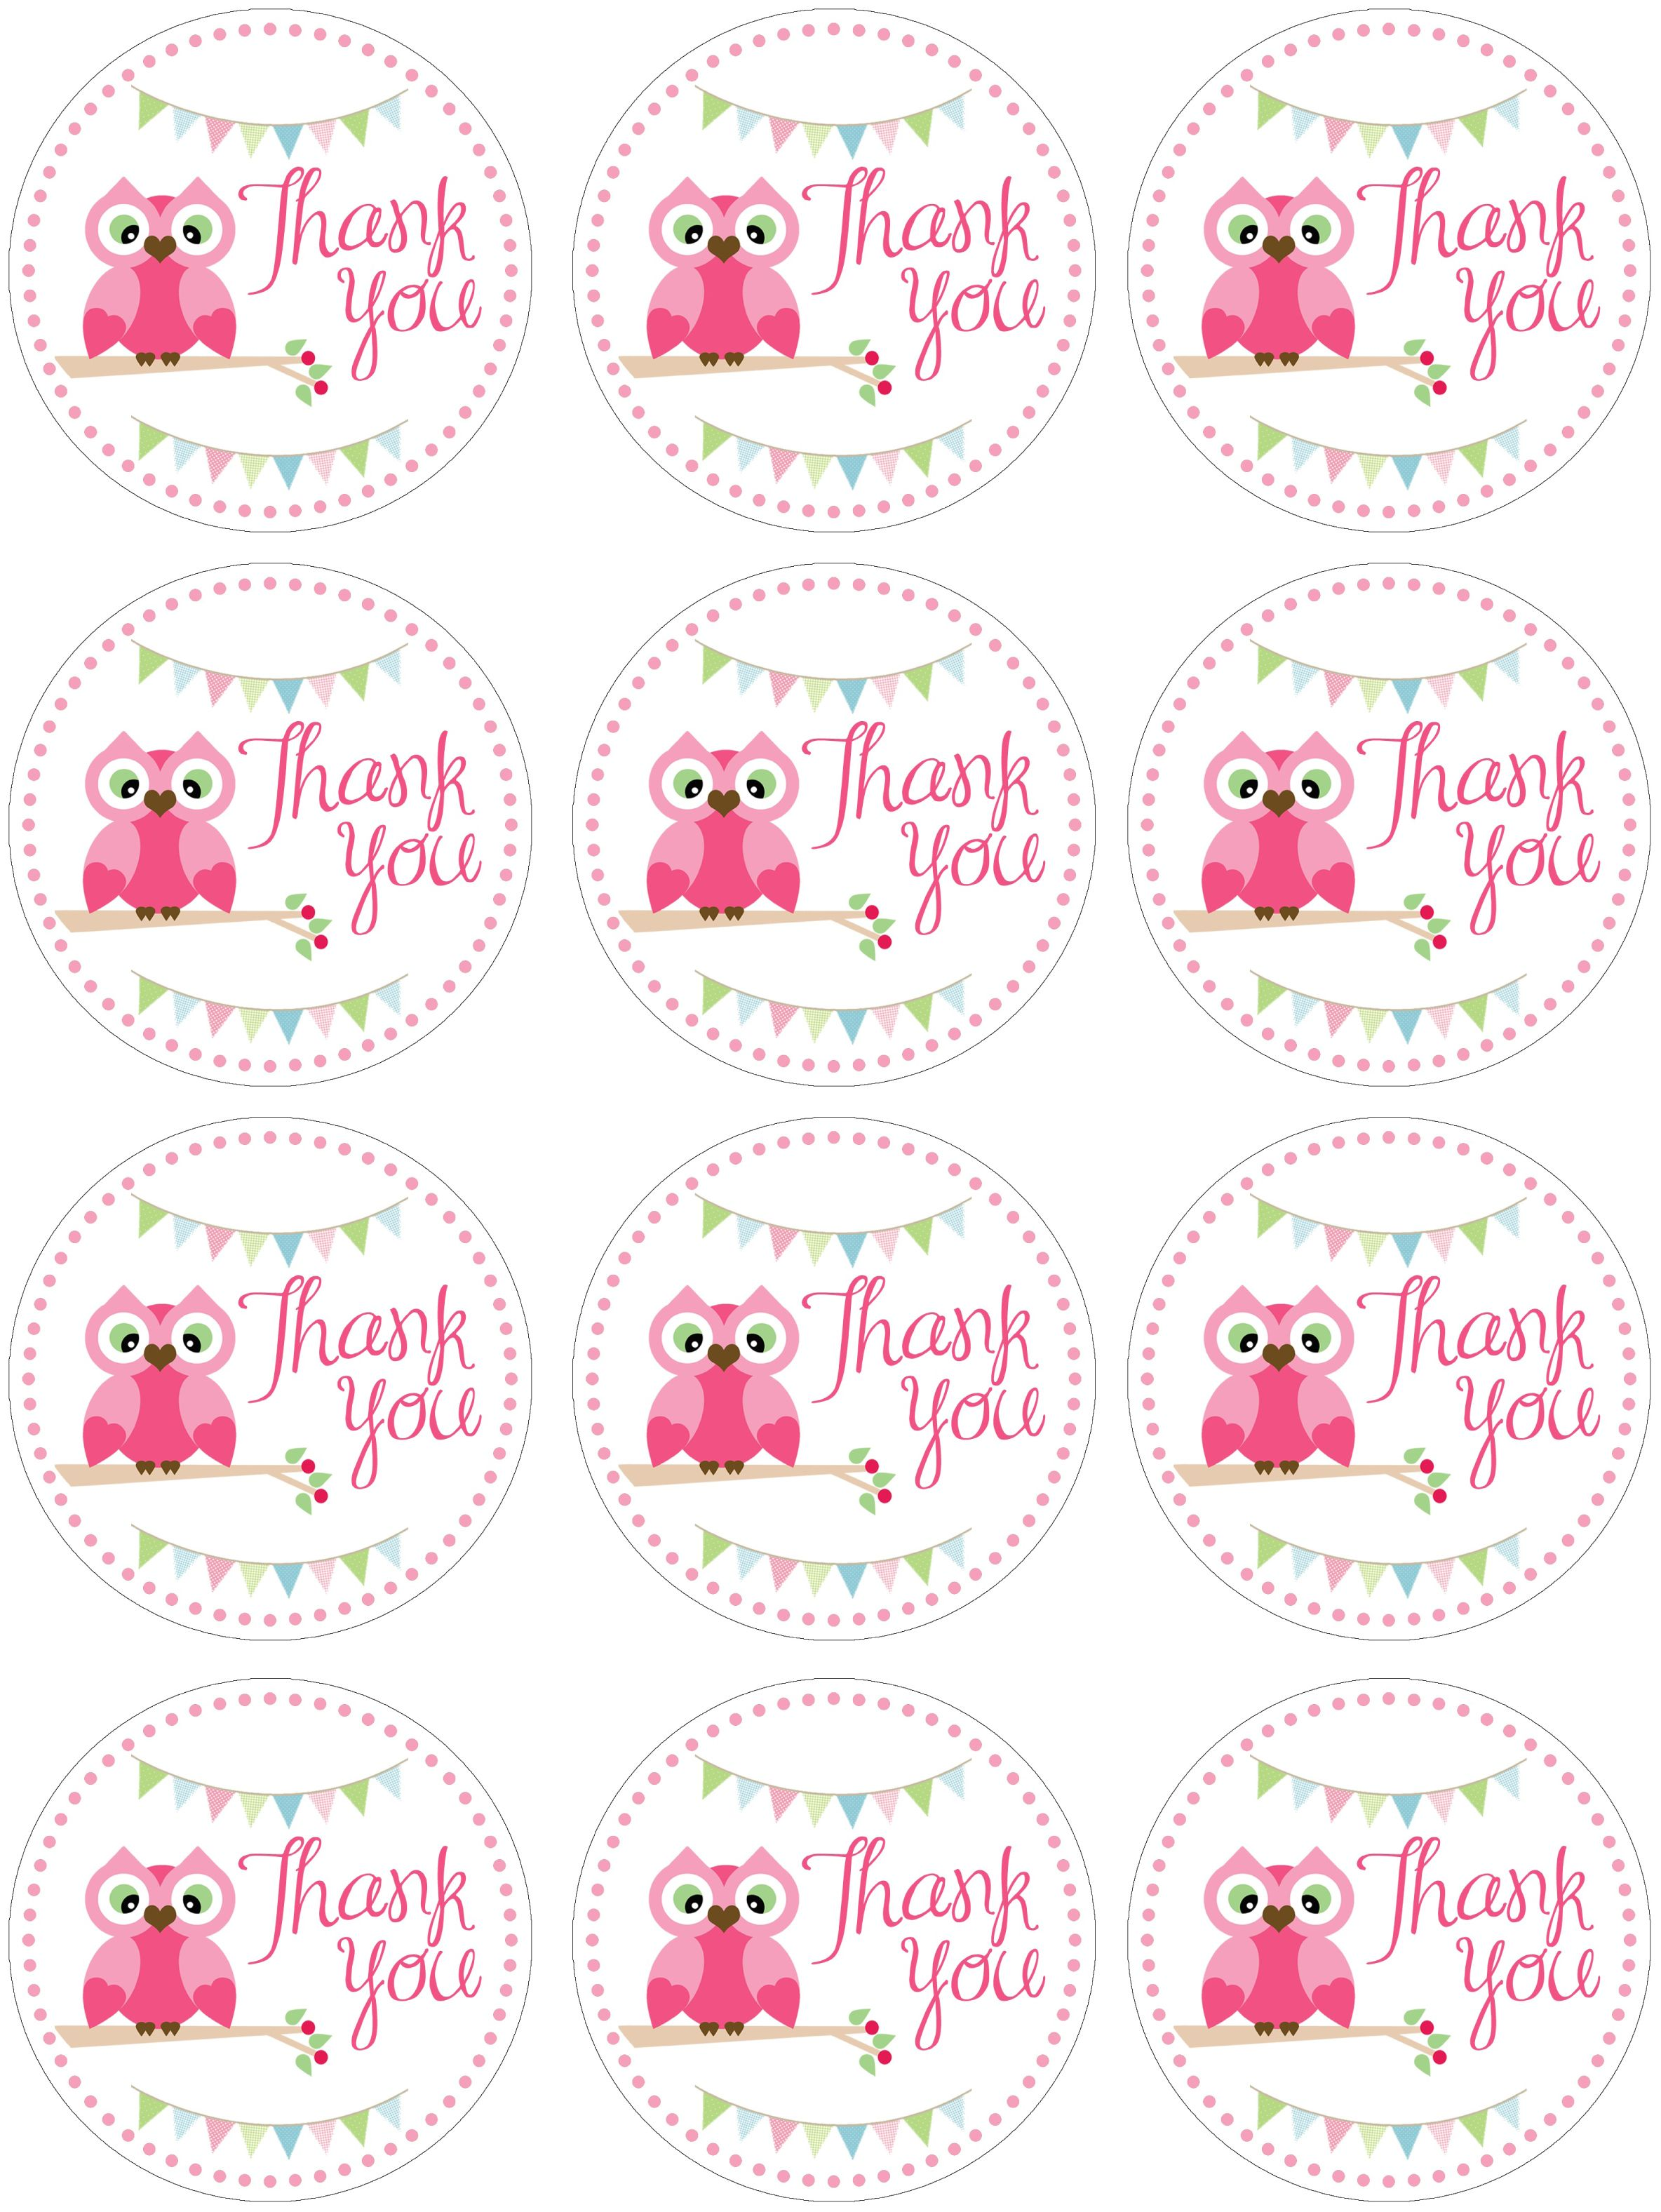 free printable thank you tags for birthdays ; 5f1f2672c3fee73697d2ce307527df14